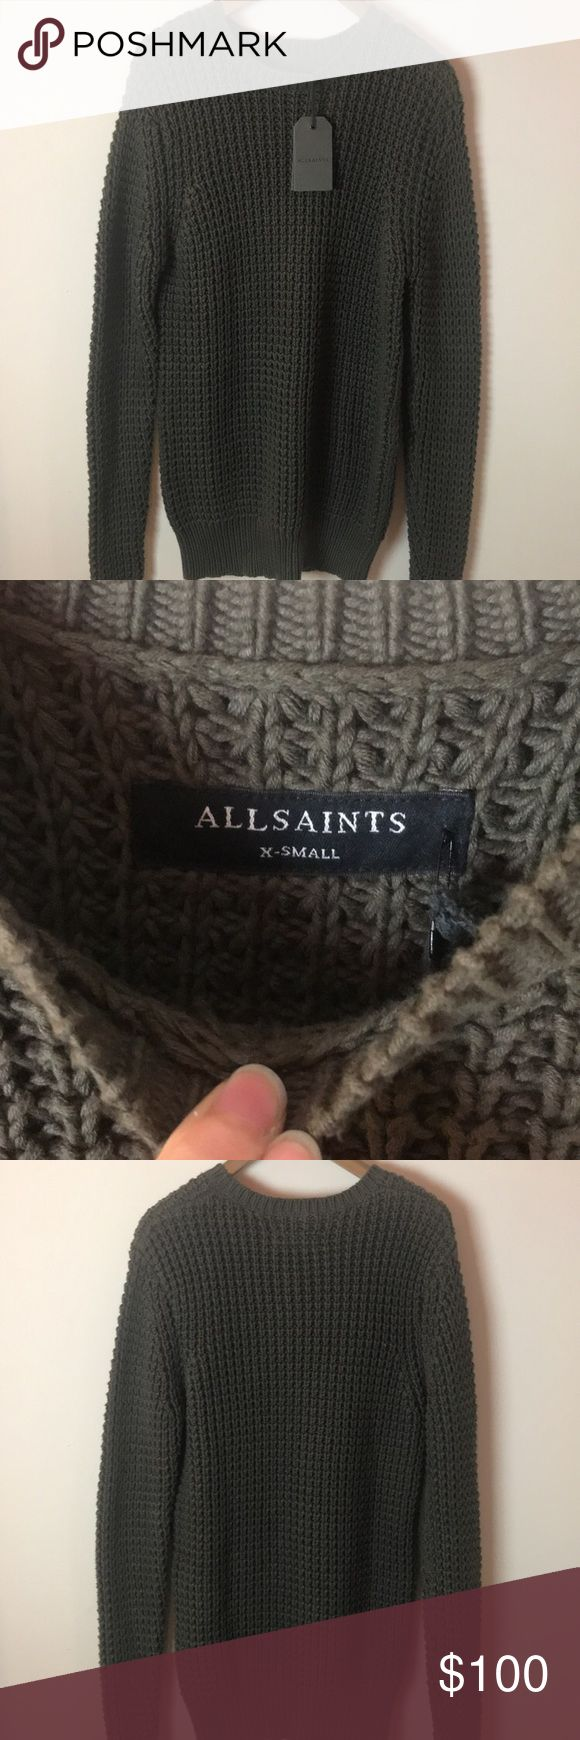 NWT men's AllSaints sweater NWT. Size XS. NAME IS ROK CREW. color is olive All Saints Sweaters Crewneck